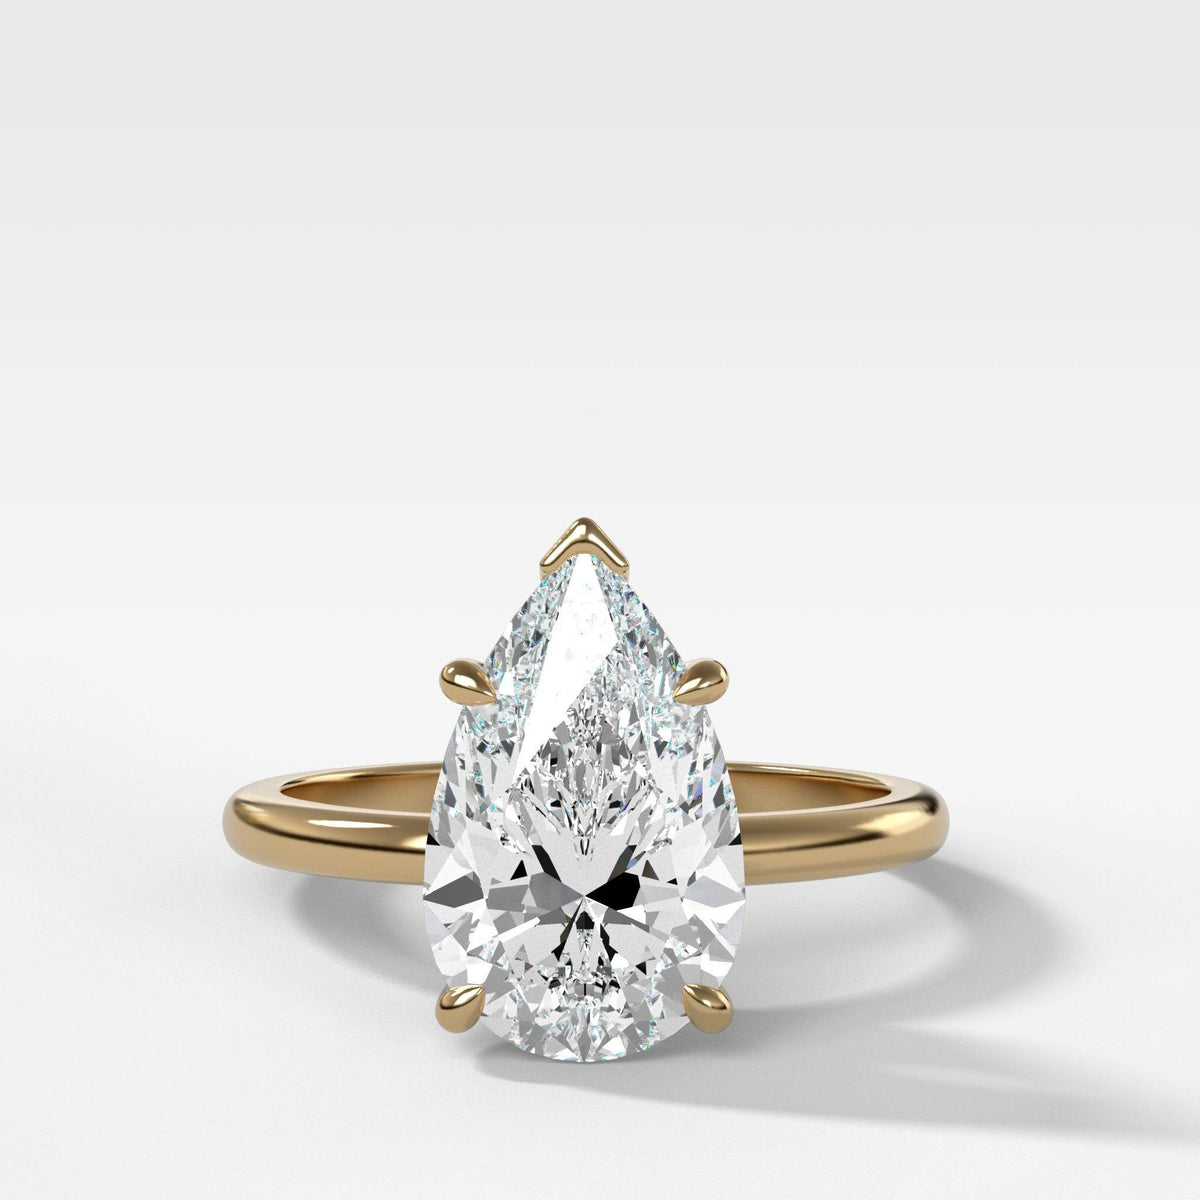 Crescent Solitaire With Pear Cut in Yellow Gold by Good Stone